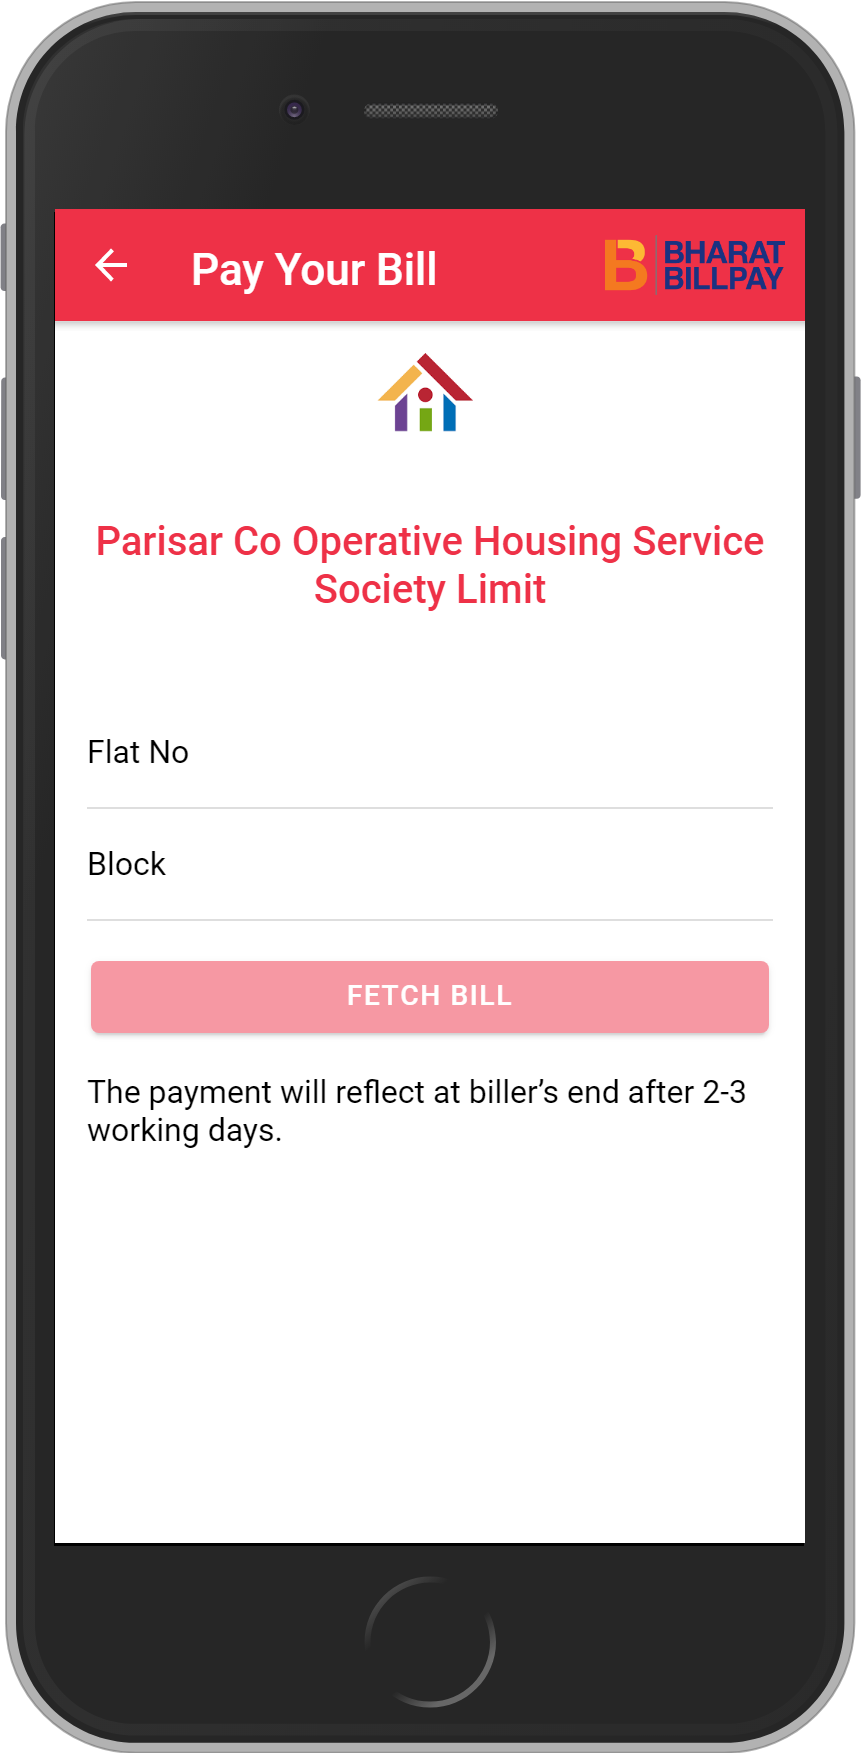 Get UNLIMITED <b>0.1%</b> CASHBACK on PARISAR CO OPERATIVE HOUSING SERVICE SOCIETY LIMIT Recharges.